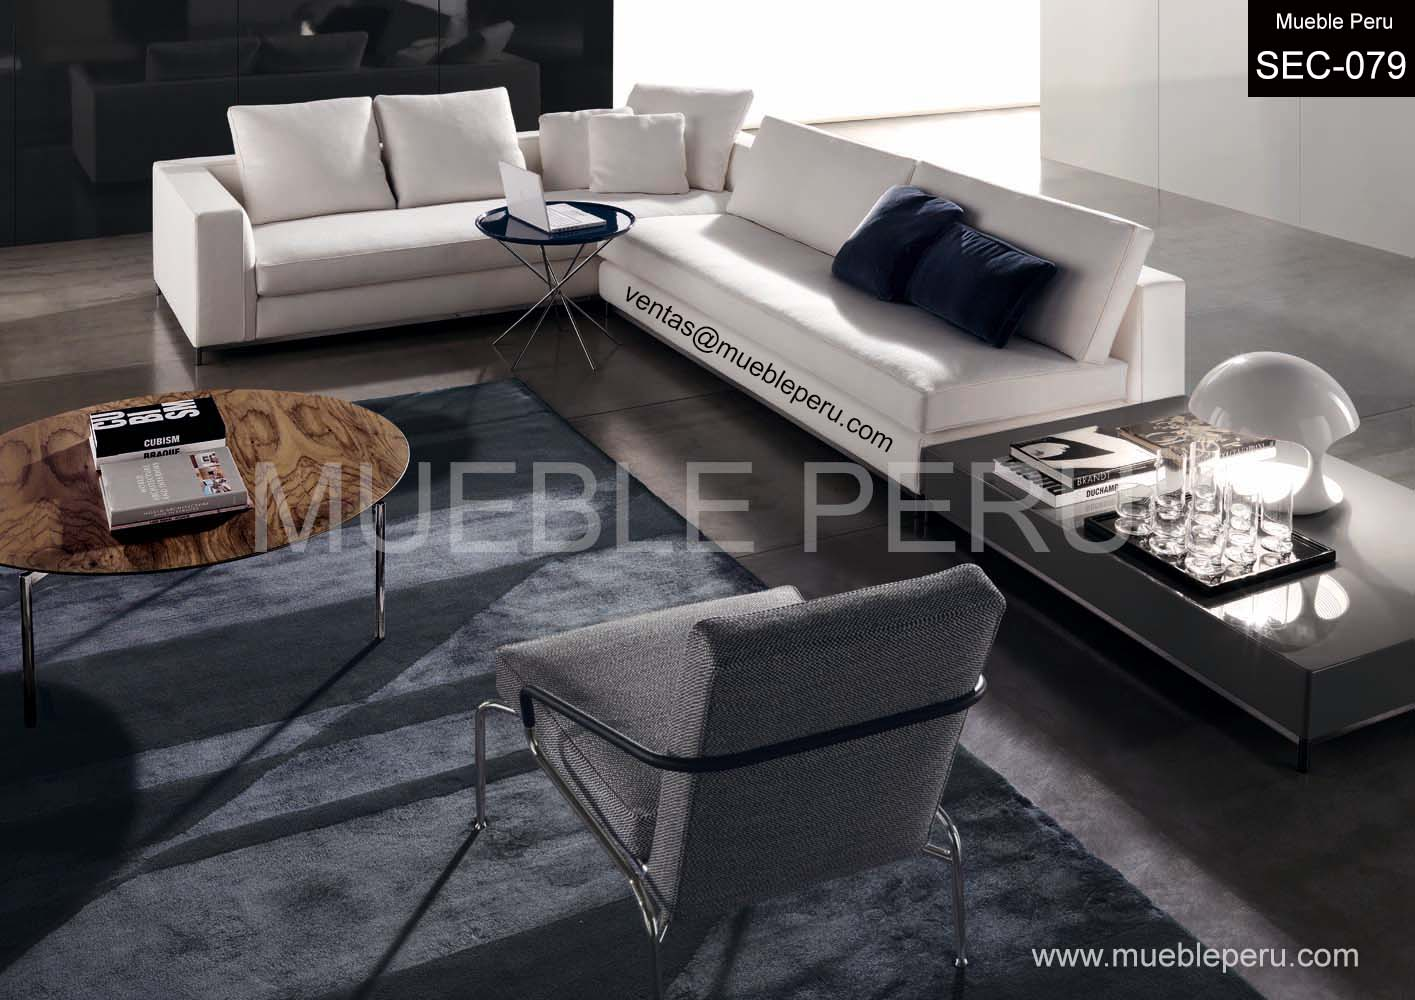 mueble peru. Black Bedroom Furniture Sets. Home Design Ideas